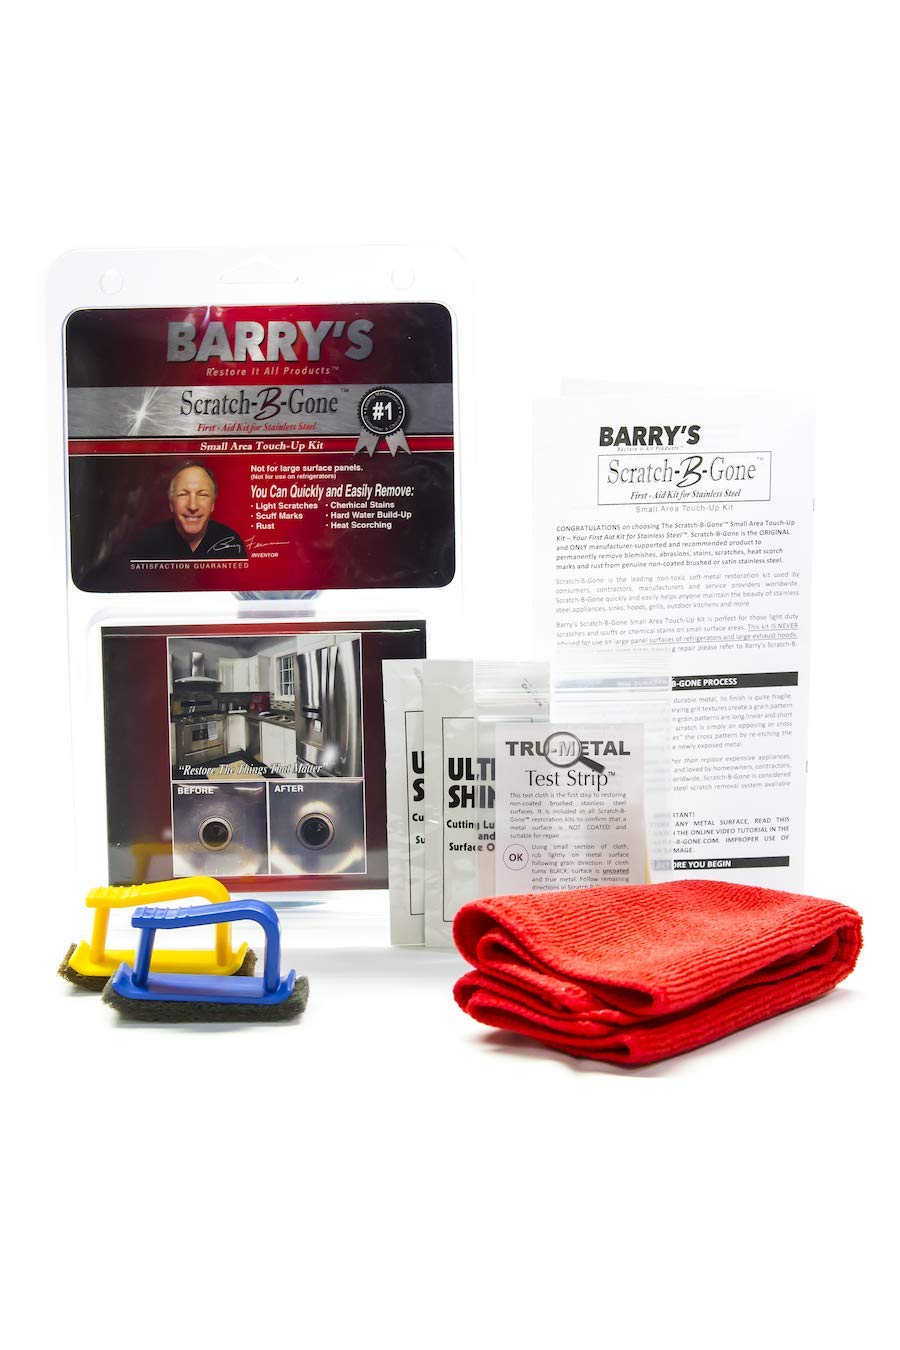 Barry's Restore It All Products - Scratch-B-Gone Small Area Touch-Up Kit